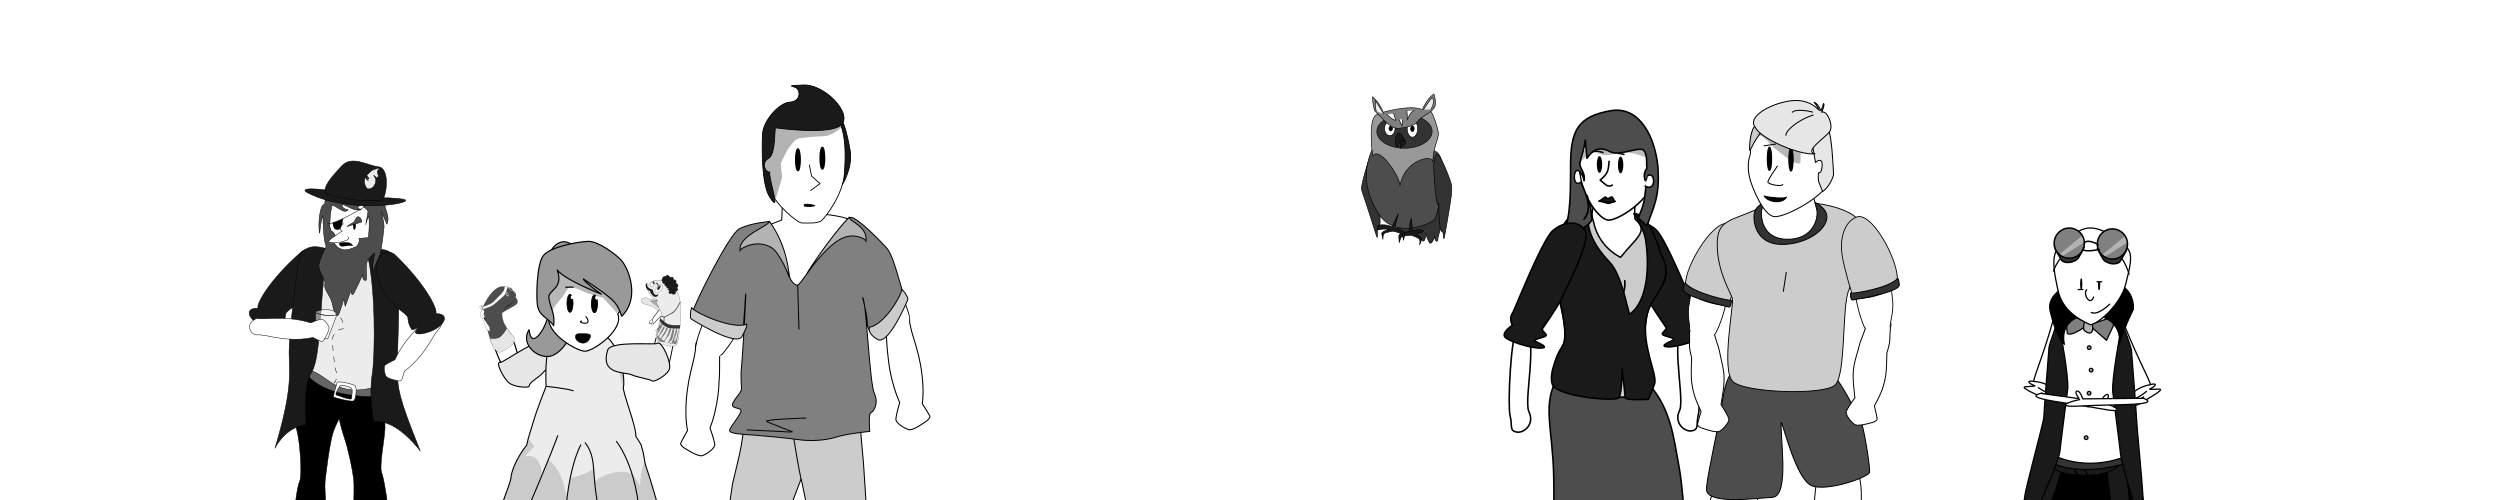 The Curse of Dwight Periwinkle